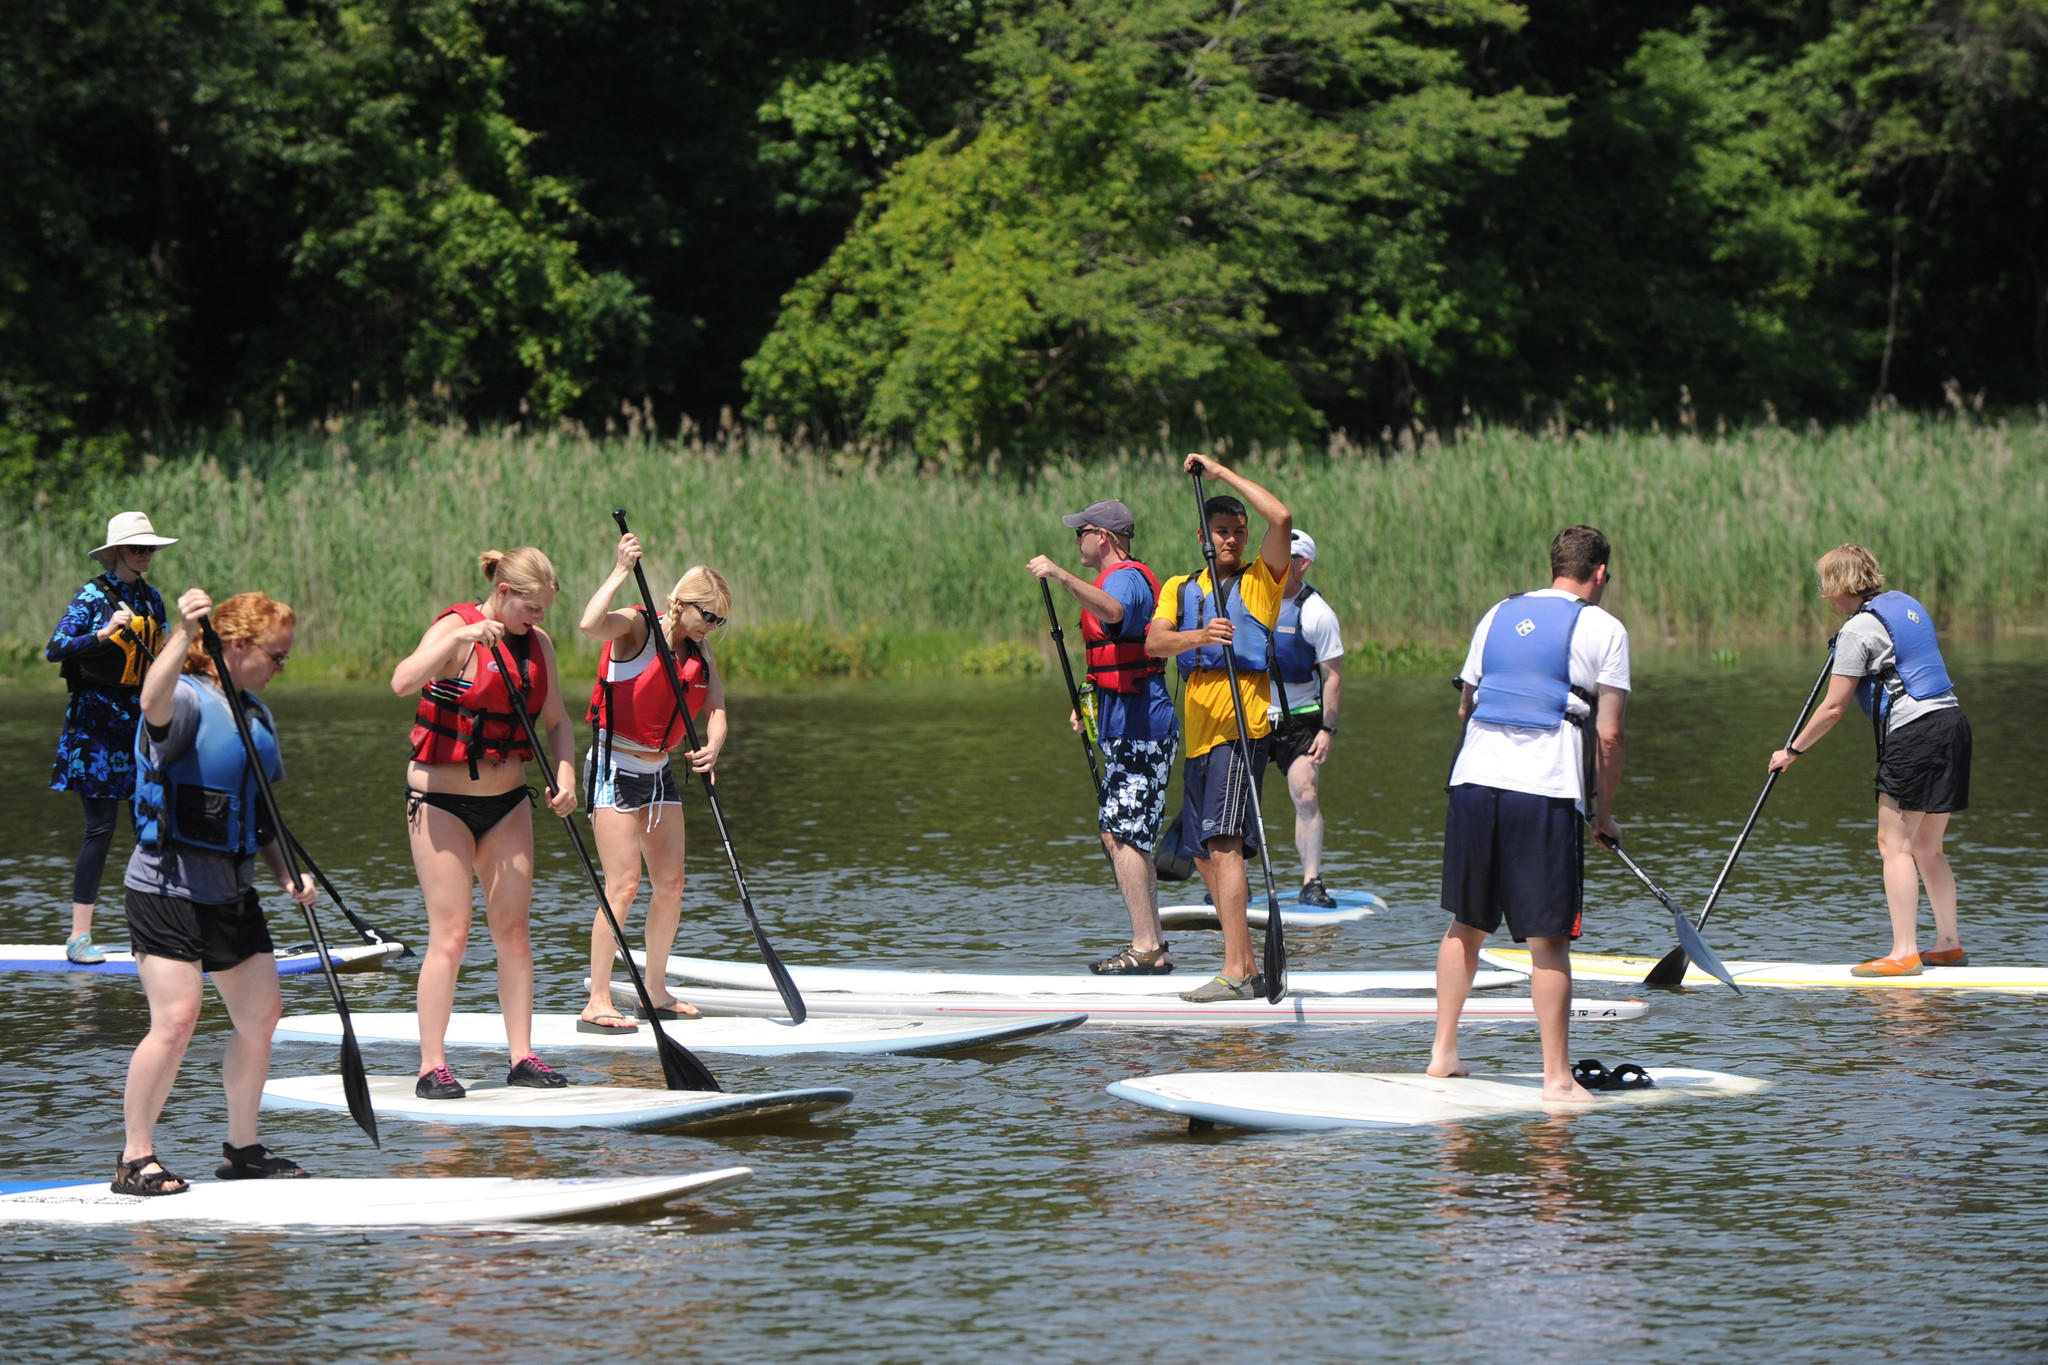 Students begin to test their abilities during a stand-up paddleboard lesson offered by Ultimate Watersports at Gunpowder Falls State Park on June 9, 2012.